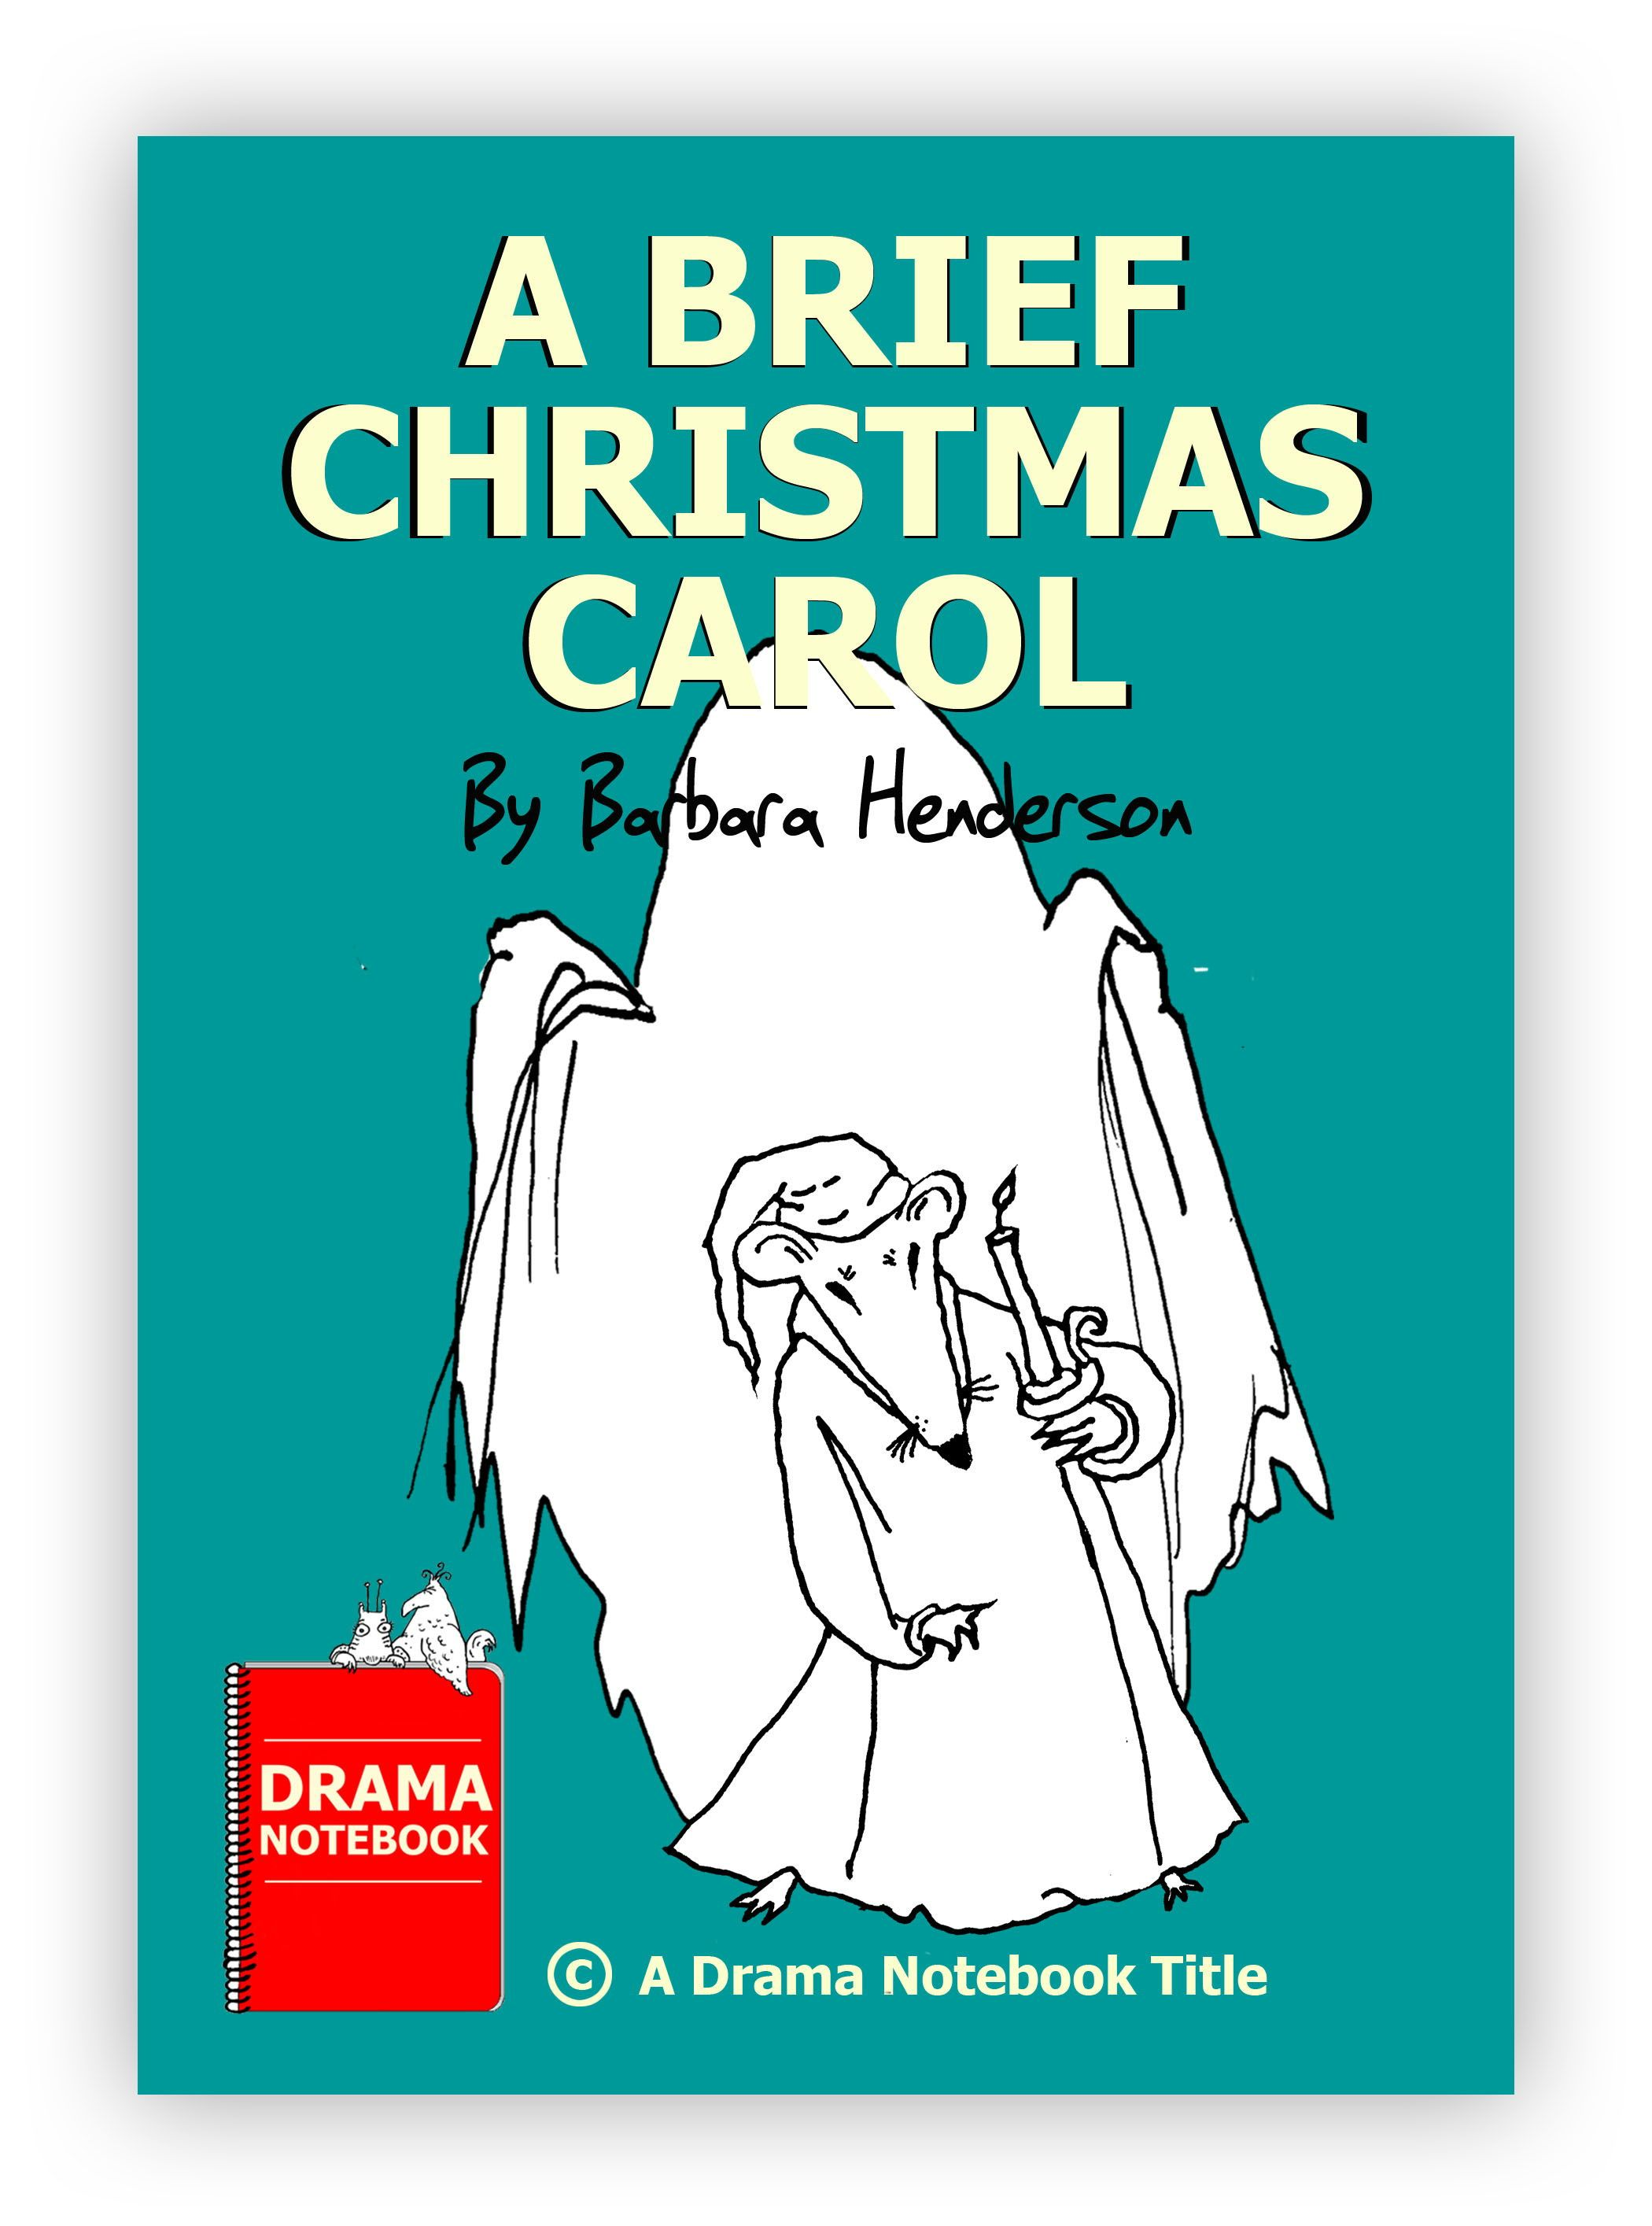 NEW Royalty-free plays for kids and teens on Drama Notebook! A Brief Christmas Carol is the ...